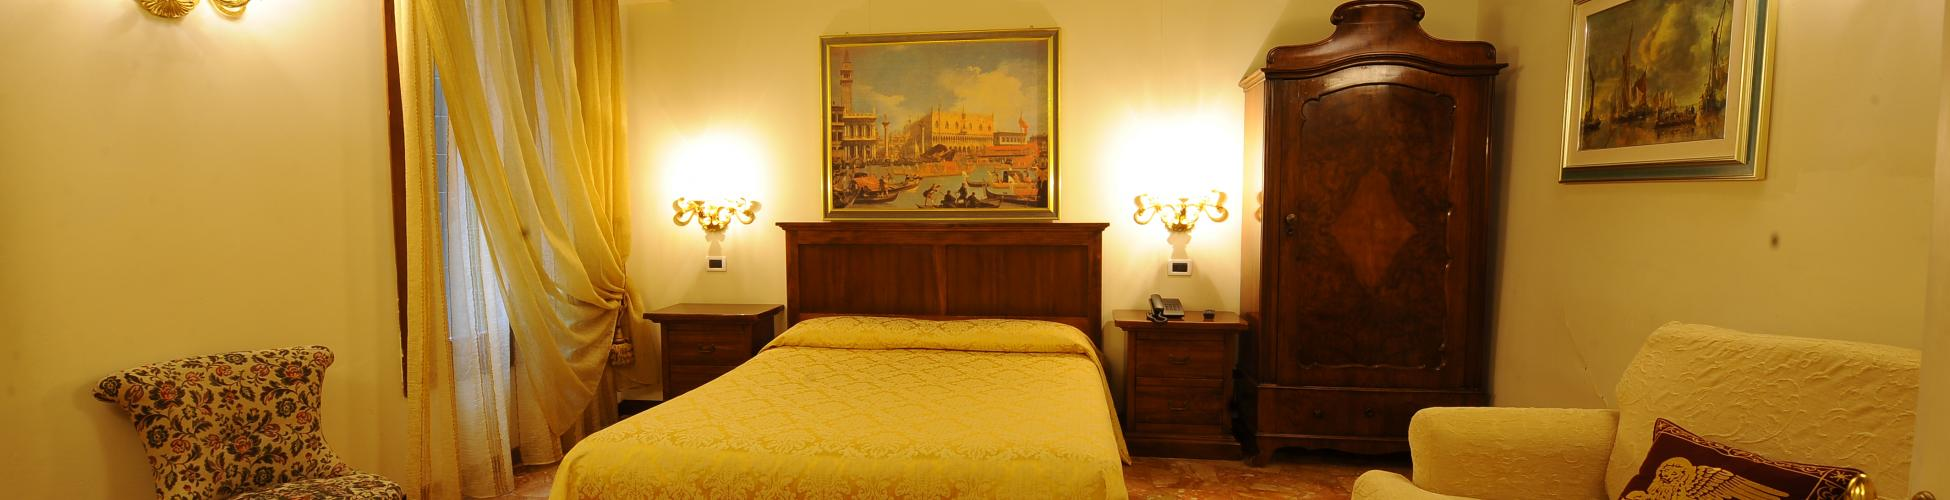 Hotel Mercurio - Suite